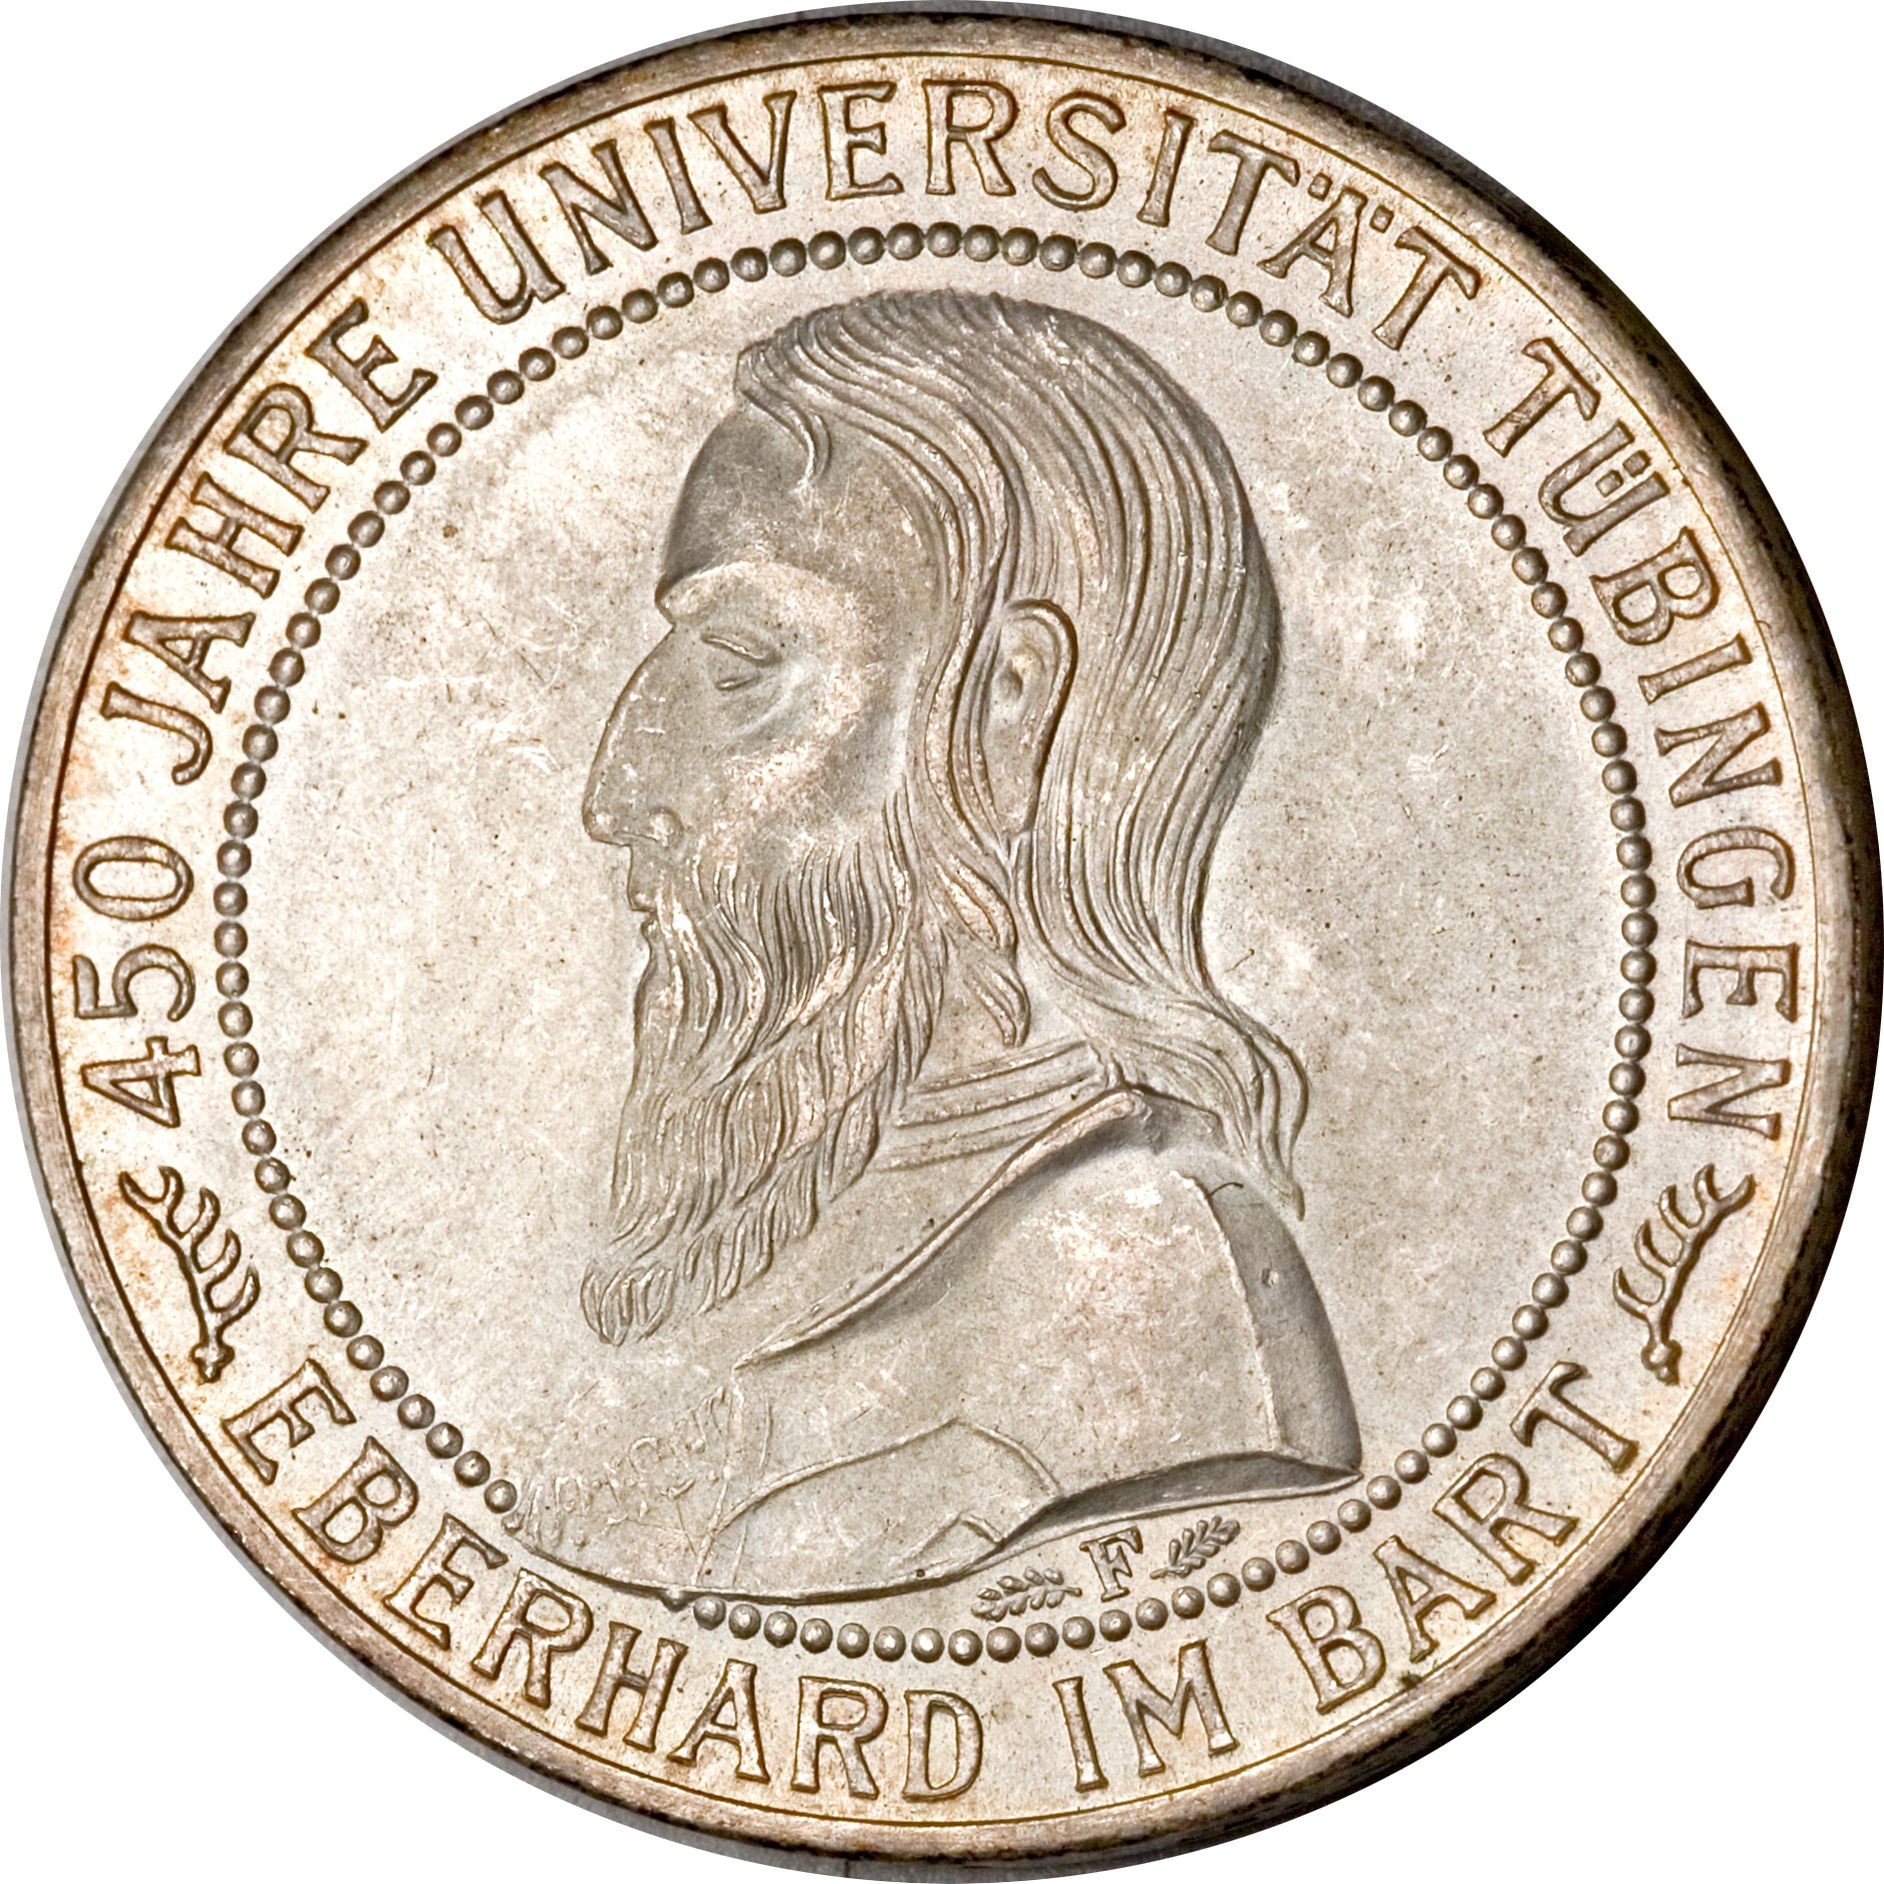 Germany 5 Reichsmark (1927 Tubingen University)